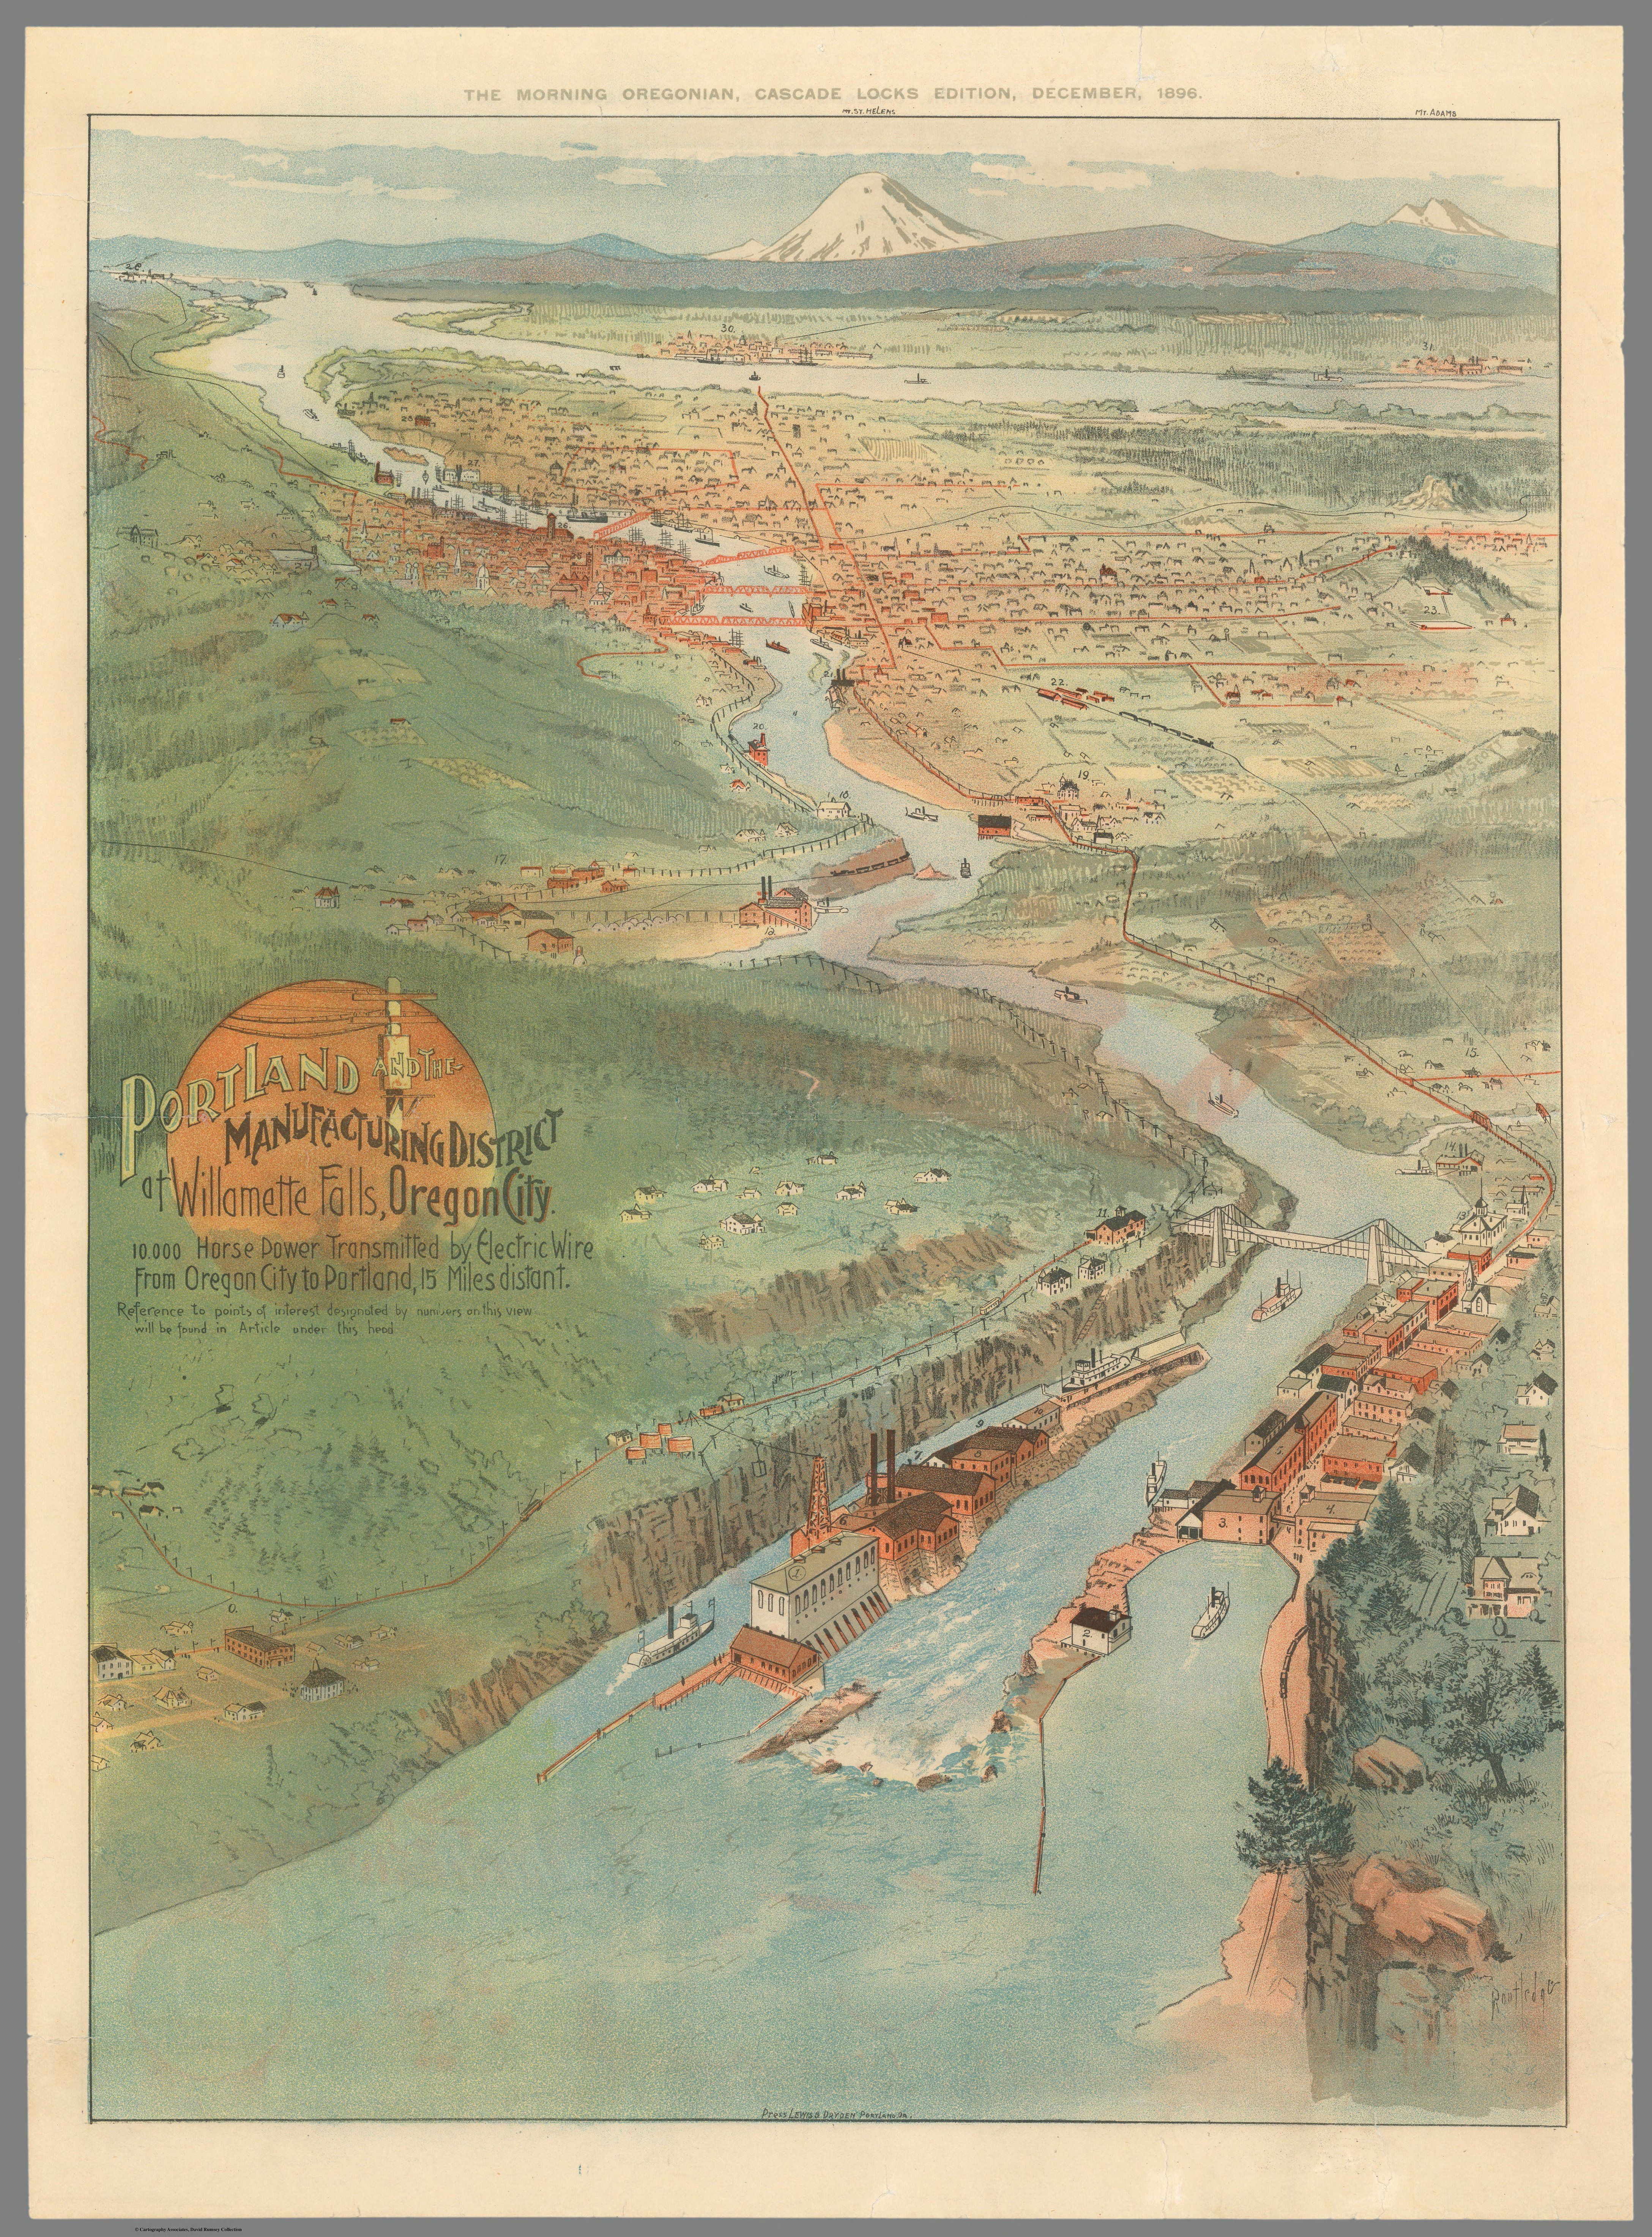 1896 Portland Manufacturing District of Willamette Falls Oregon City Map Poster